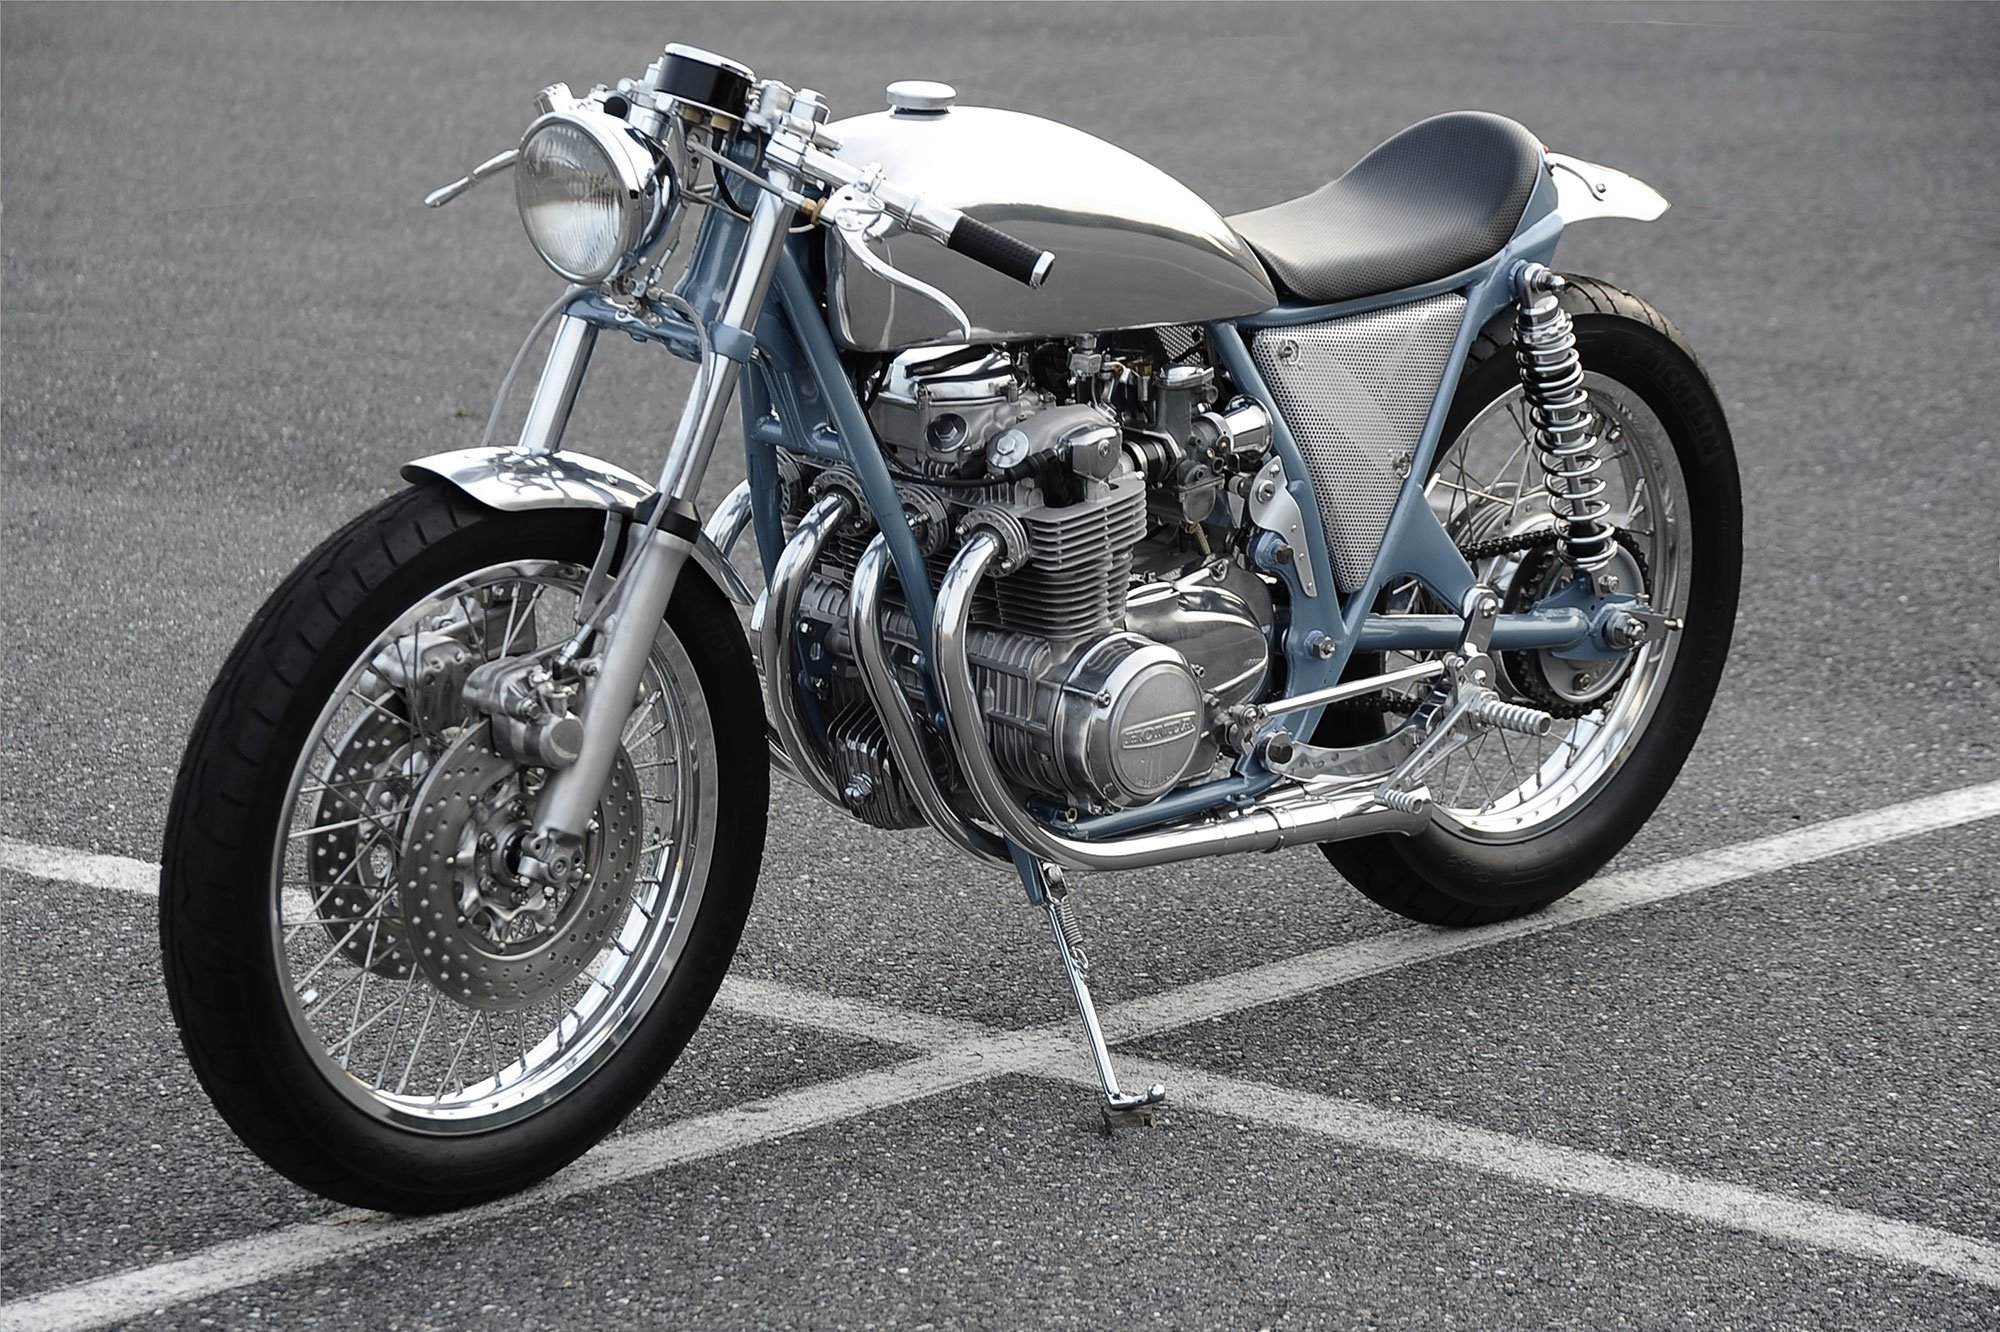 Honda CB 500 Cafe Racer By Blacksquare Motorcycles